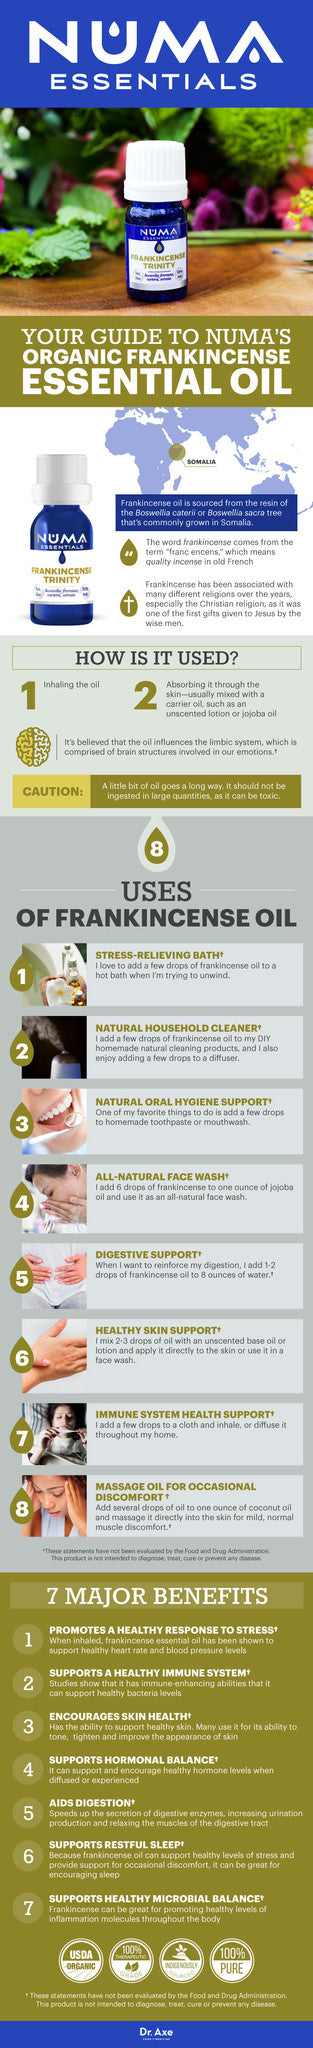 Frankincense-Essential-Oil